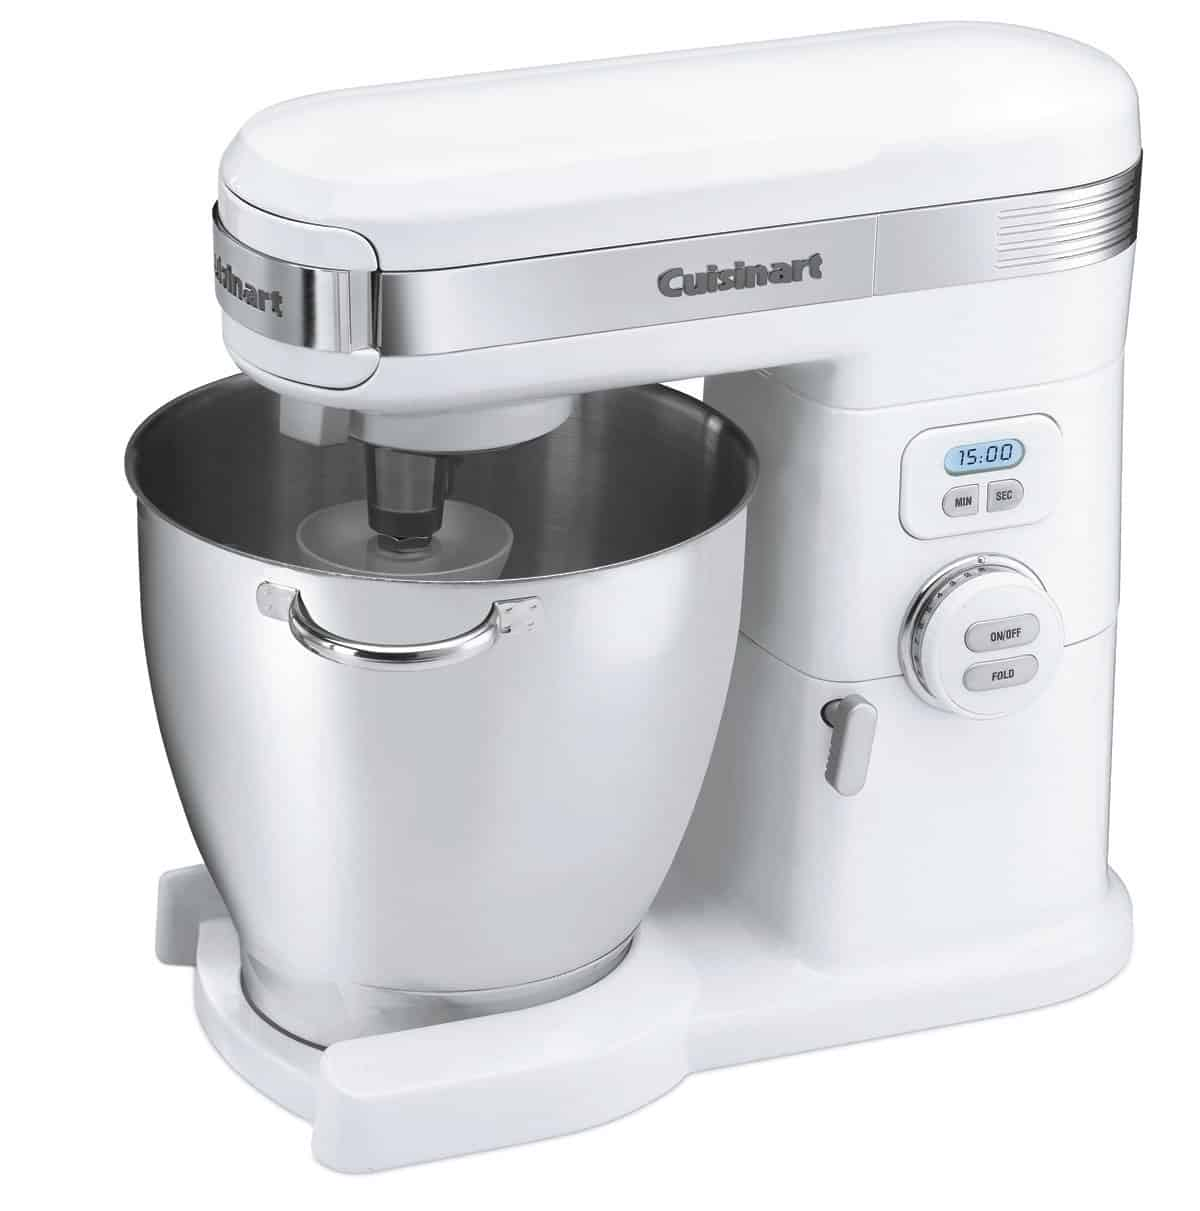 Best Kitchen Mixer For Dough